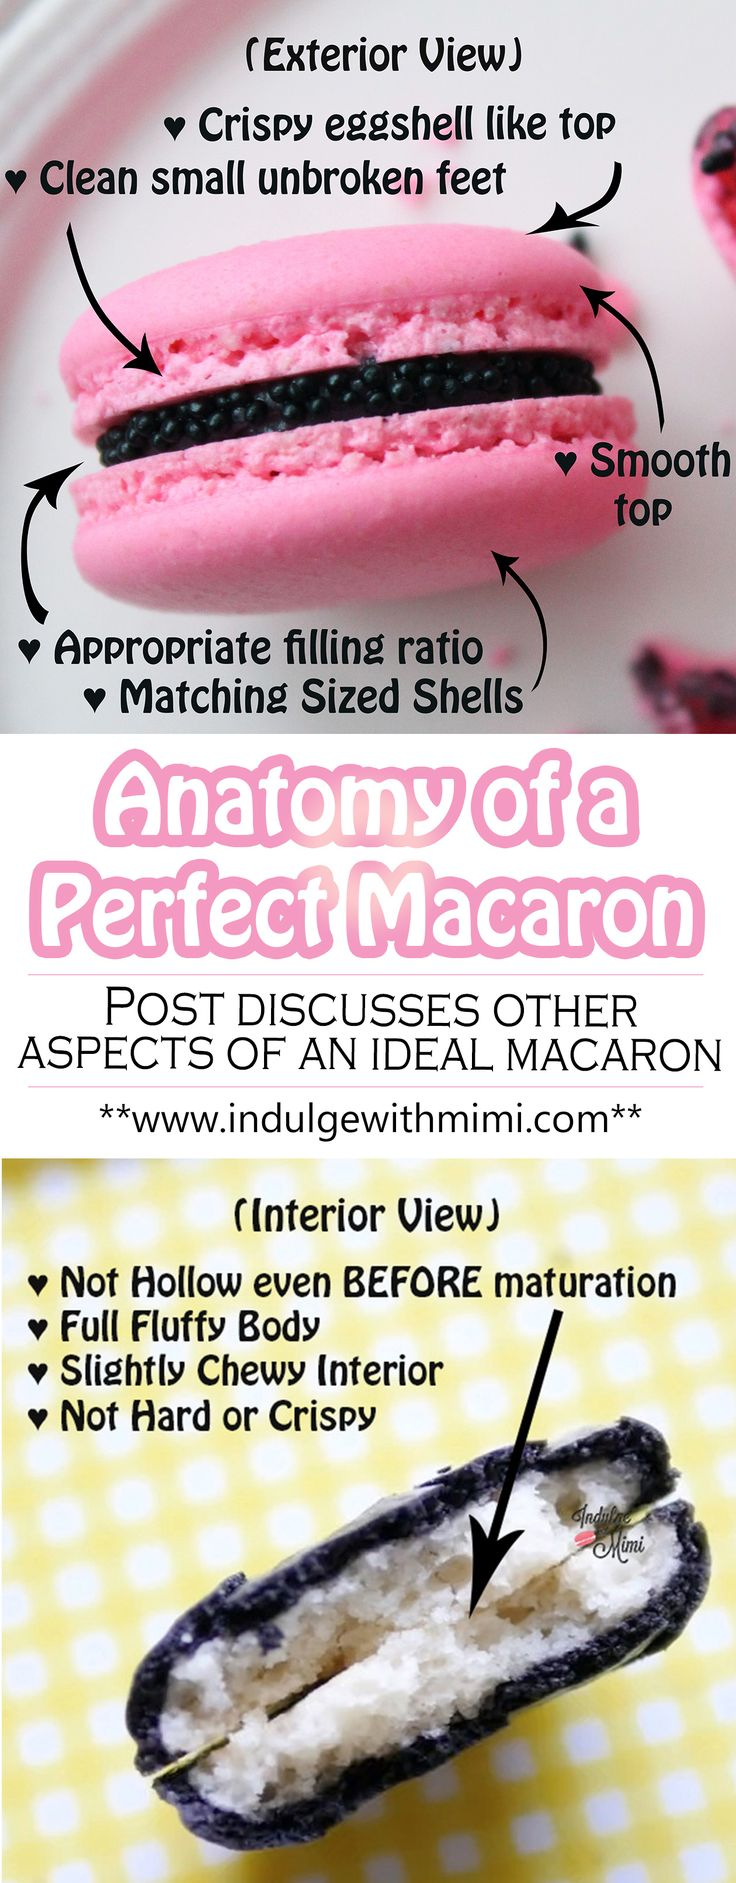 Perfect Macaron Anatomy - post on ideal macarons and how to achieve it